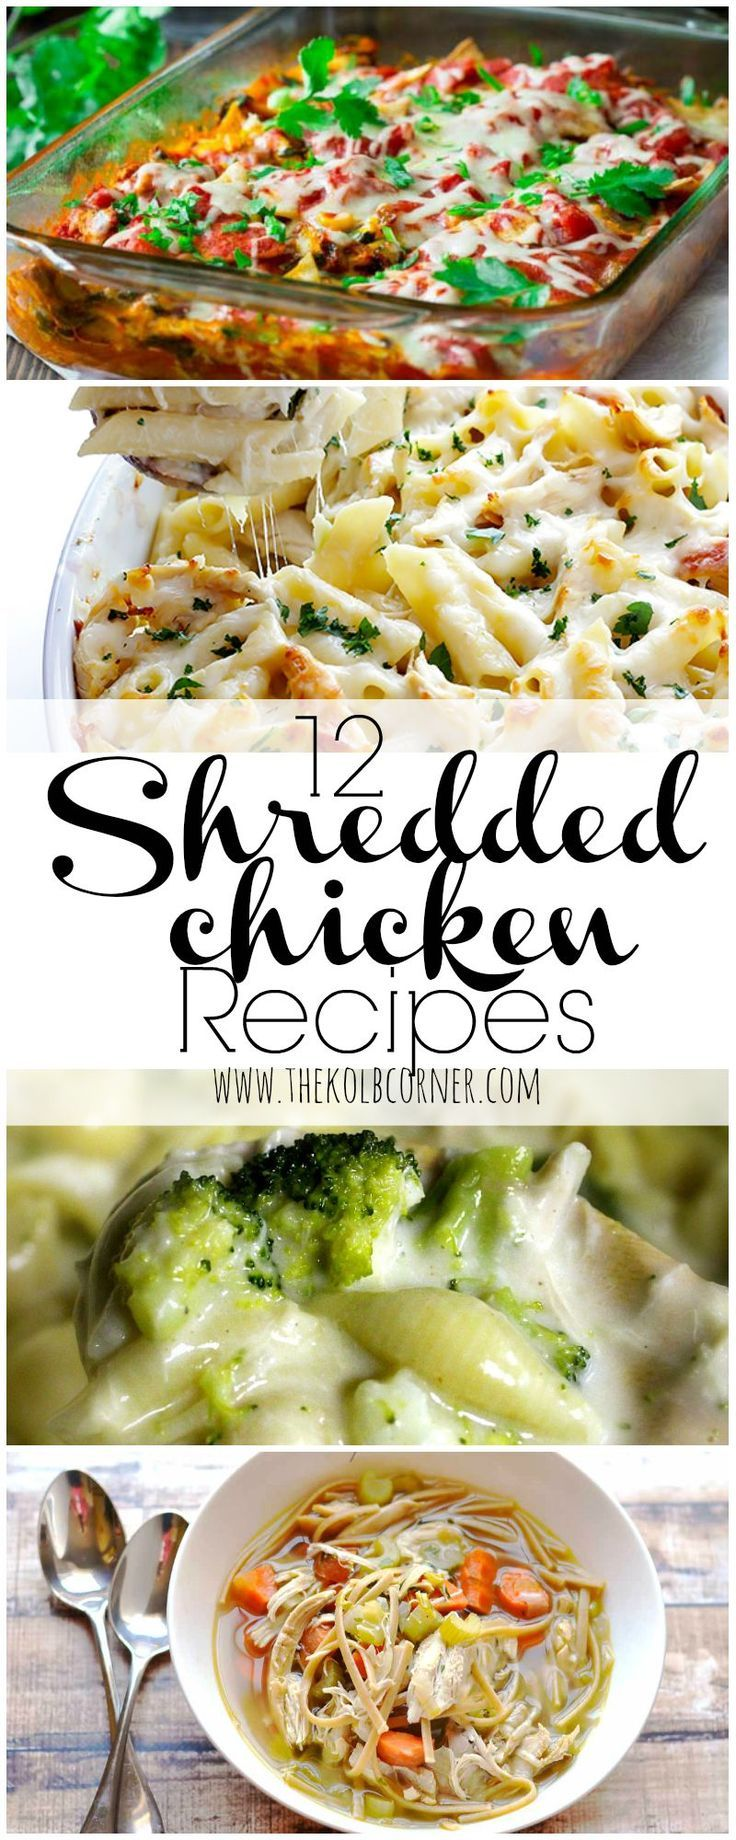 12 easy recipes that use shredded chicken  #chickenrecipes #shreddedchickenrecipes #chickendinner #domesticallycreative